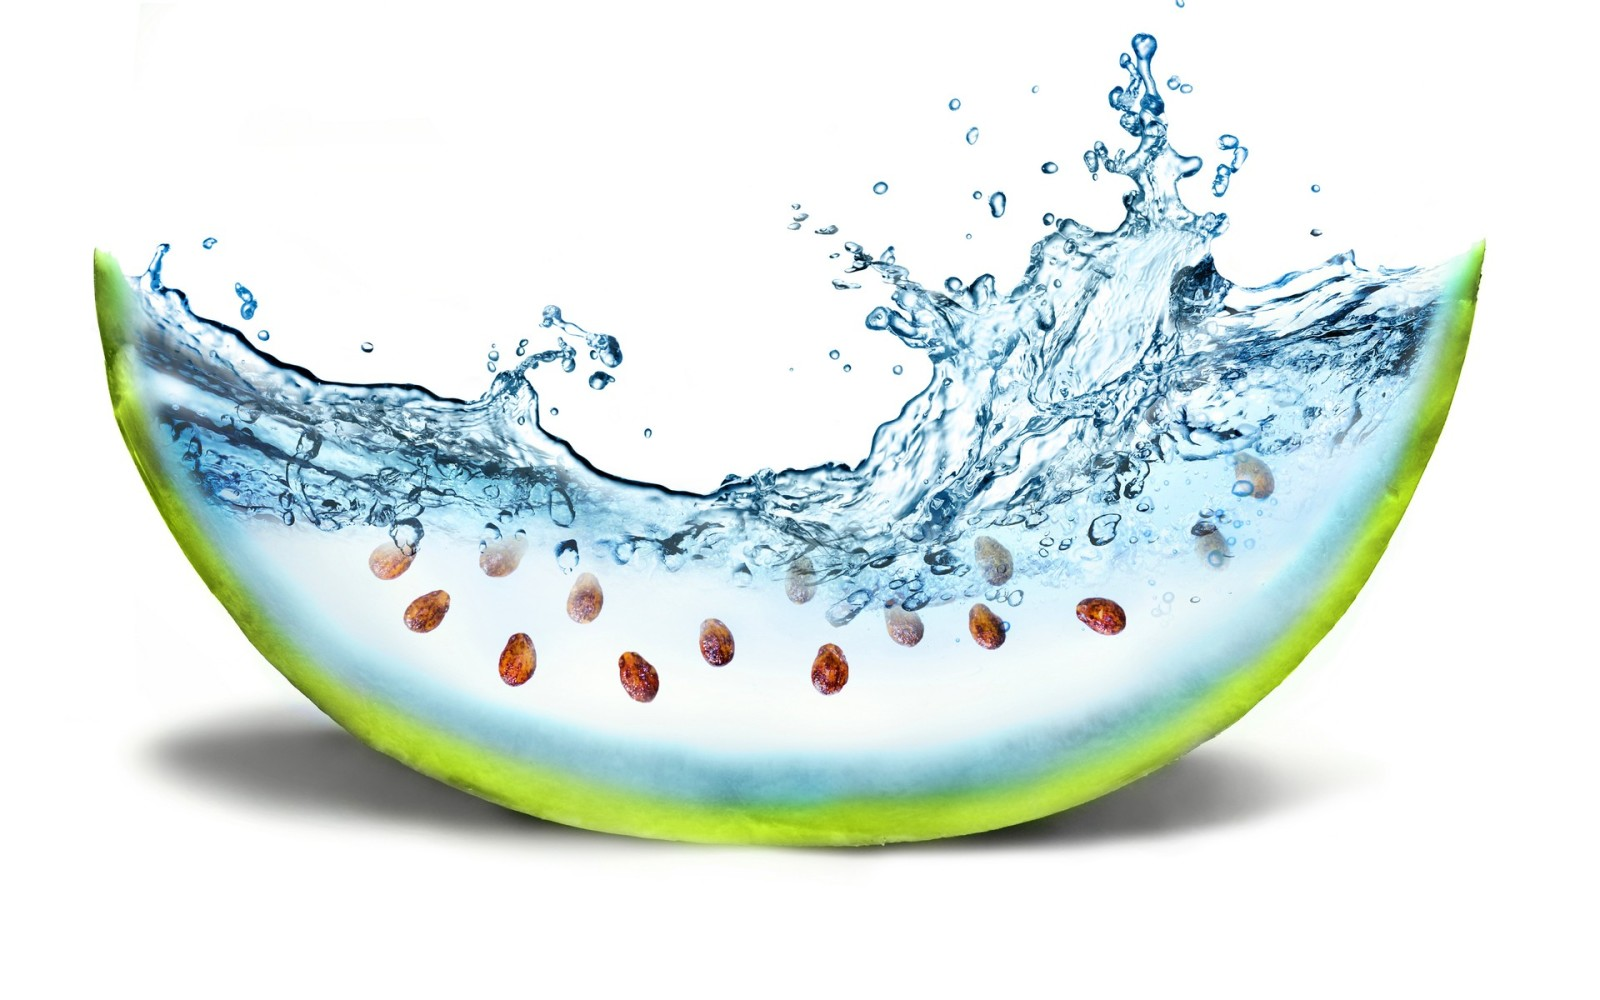 water wallpaper watermelon